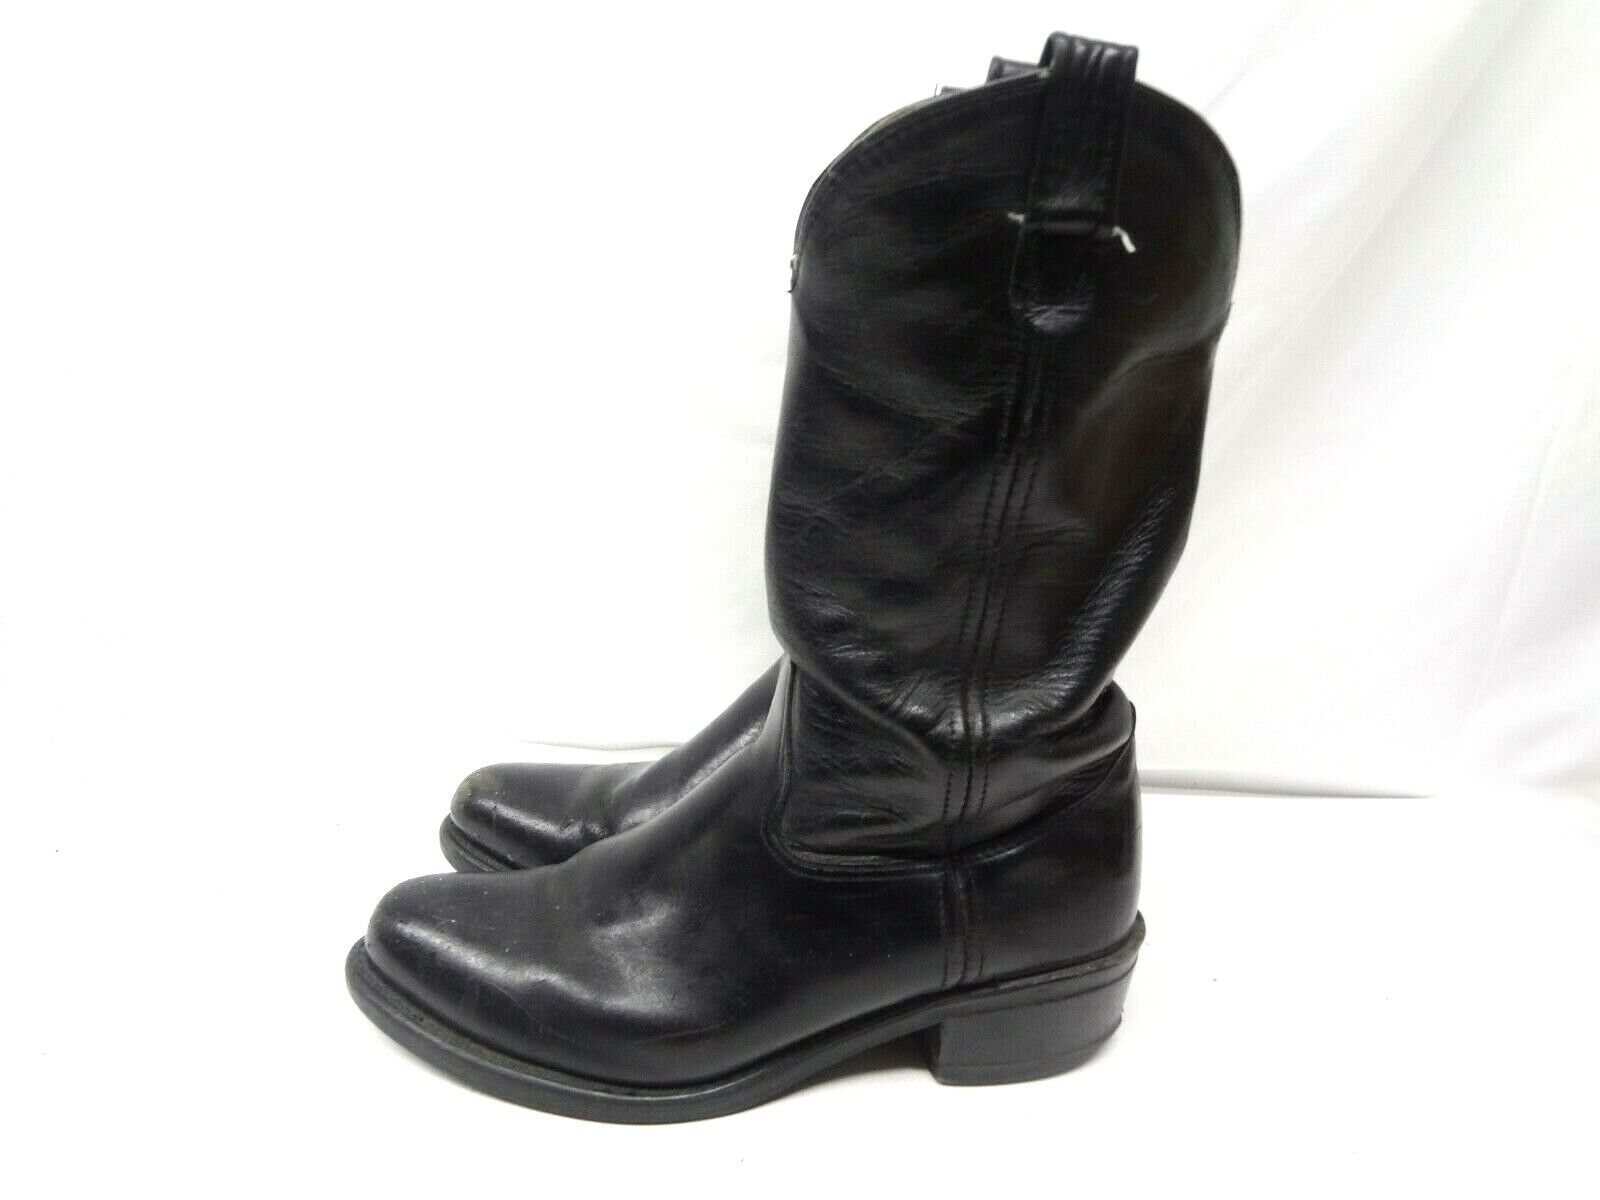 VTG HH Double-H Western Motorcycle Boots Leather Style 4620 Men's Size 8.5 EE